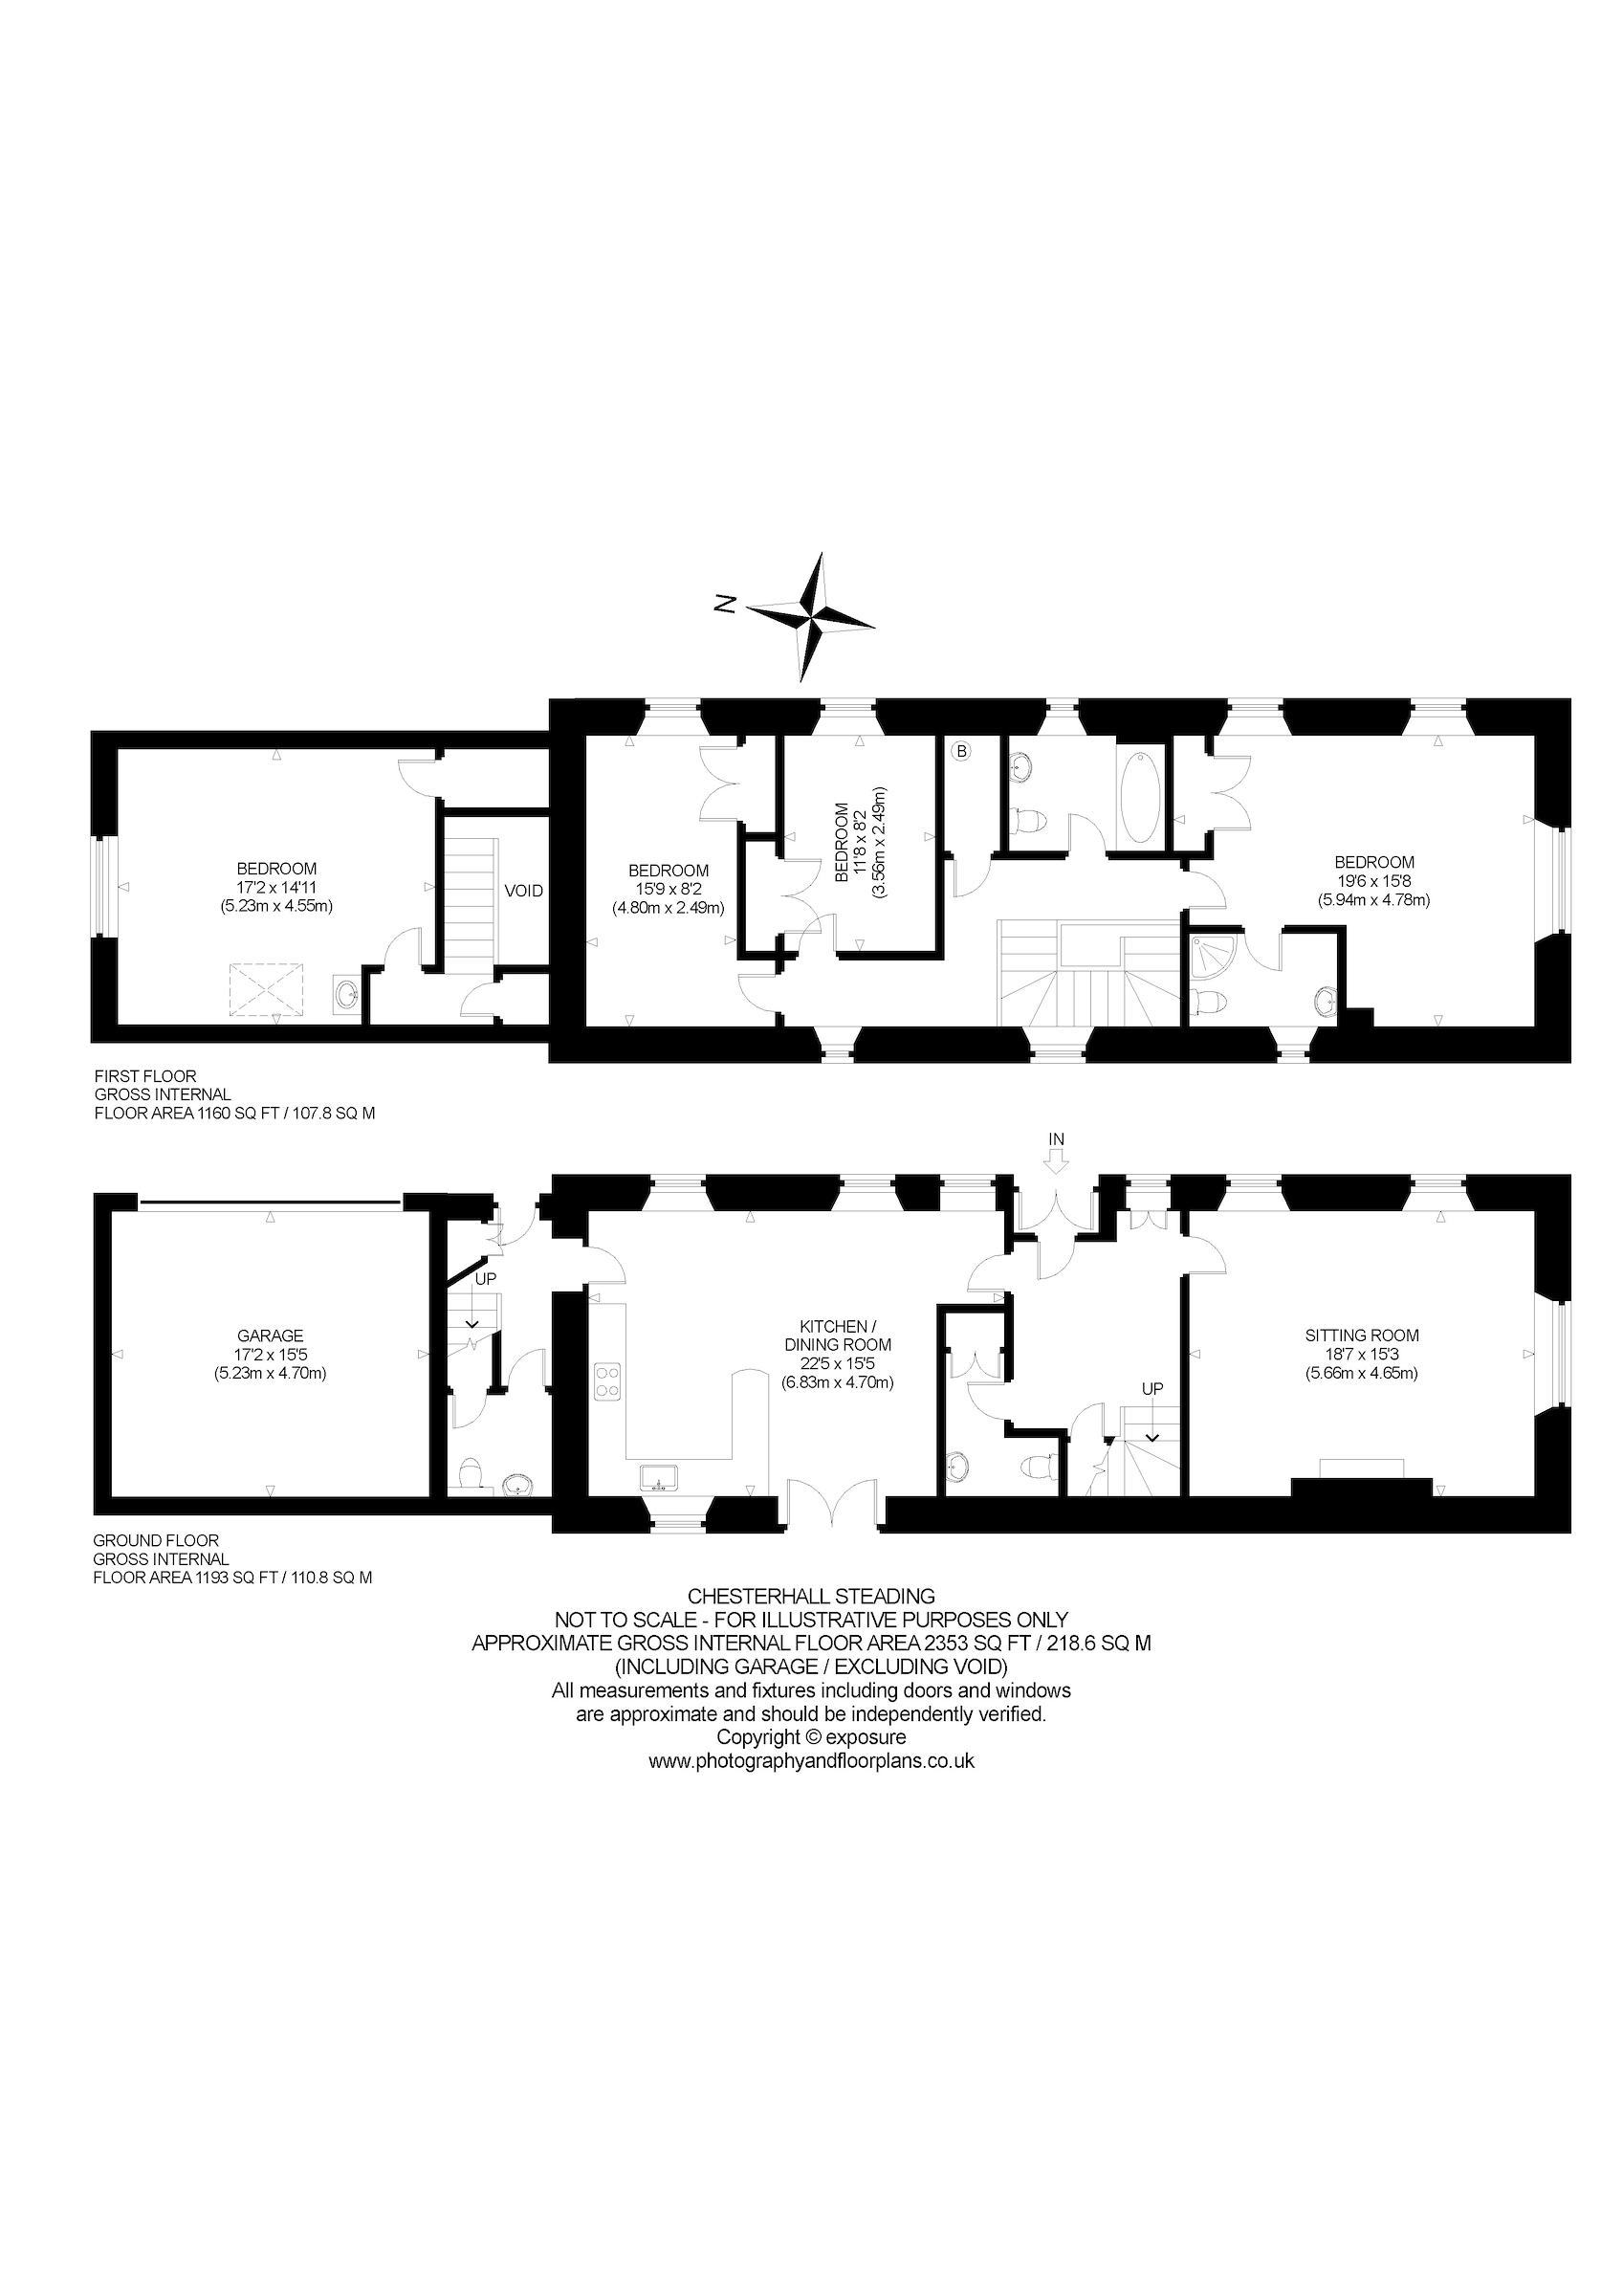 Floorplans for Chesterhall Steading, Longniddry, East Lothian, EH32